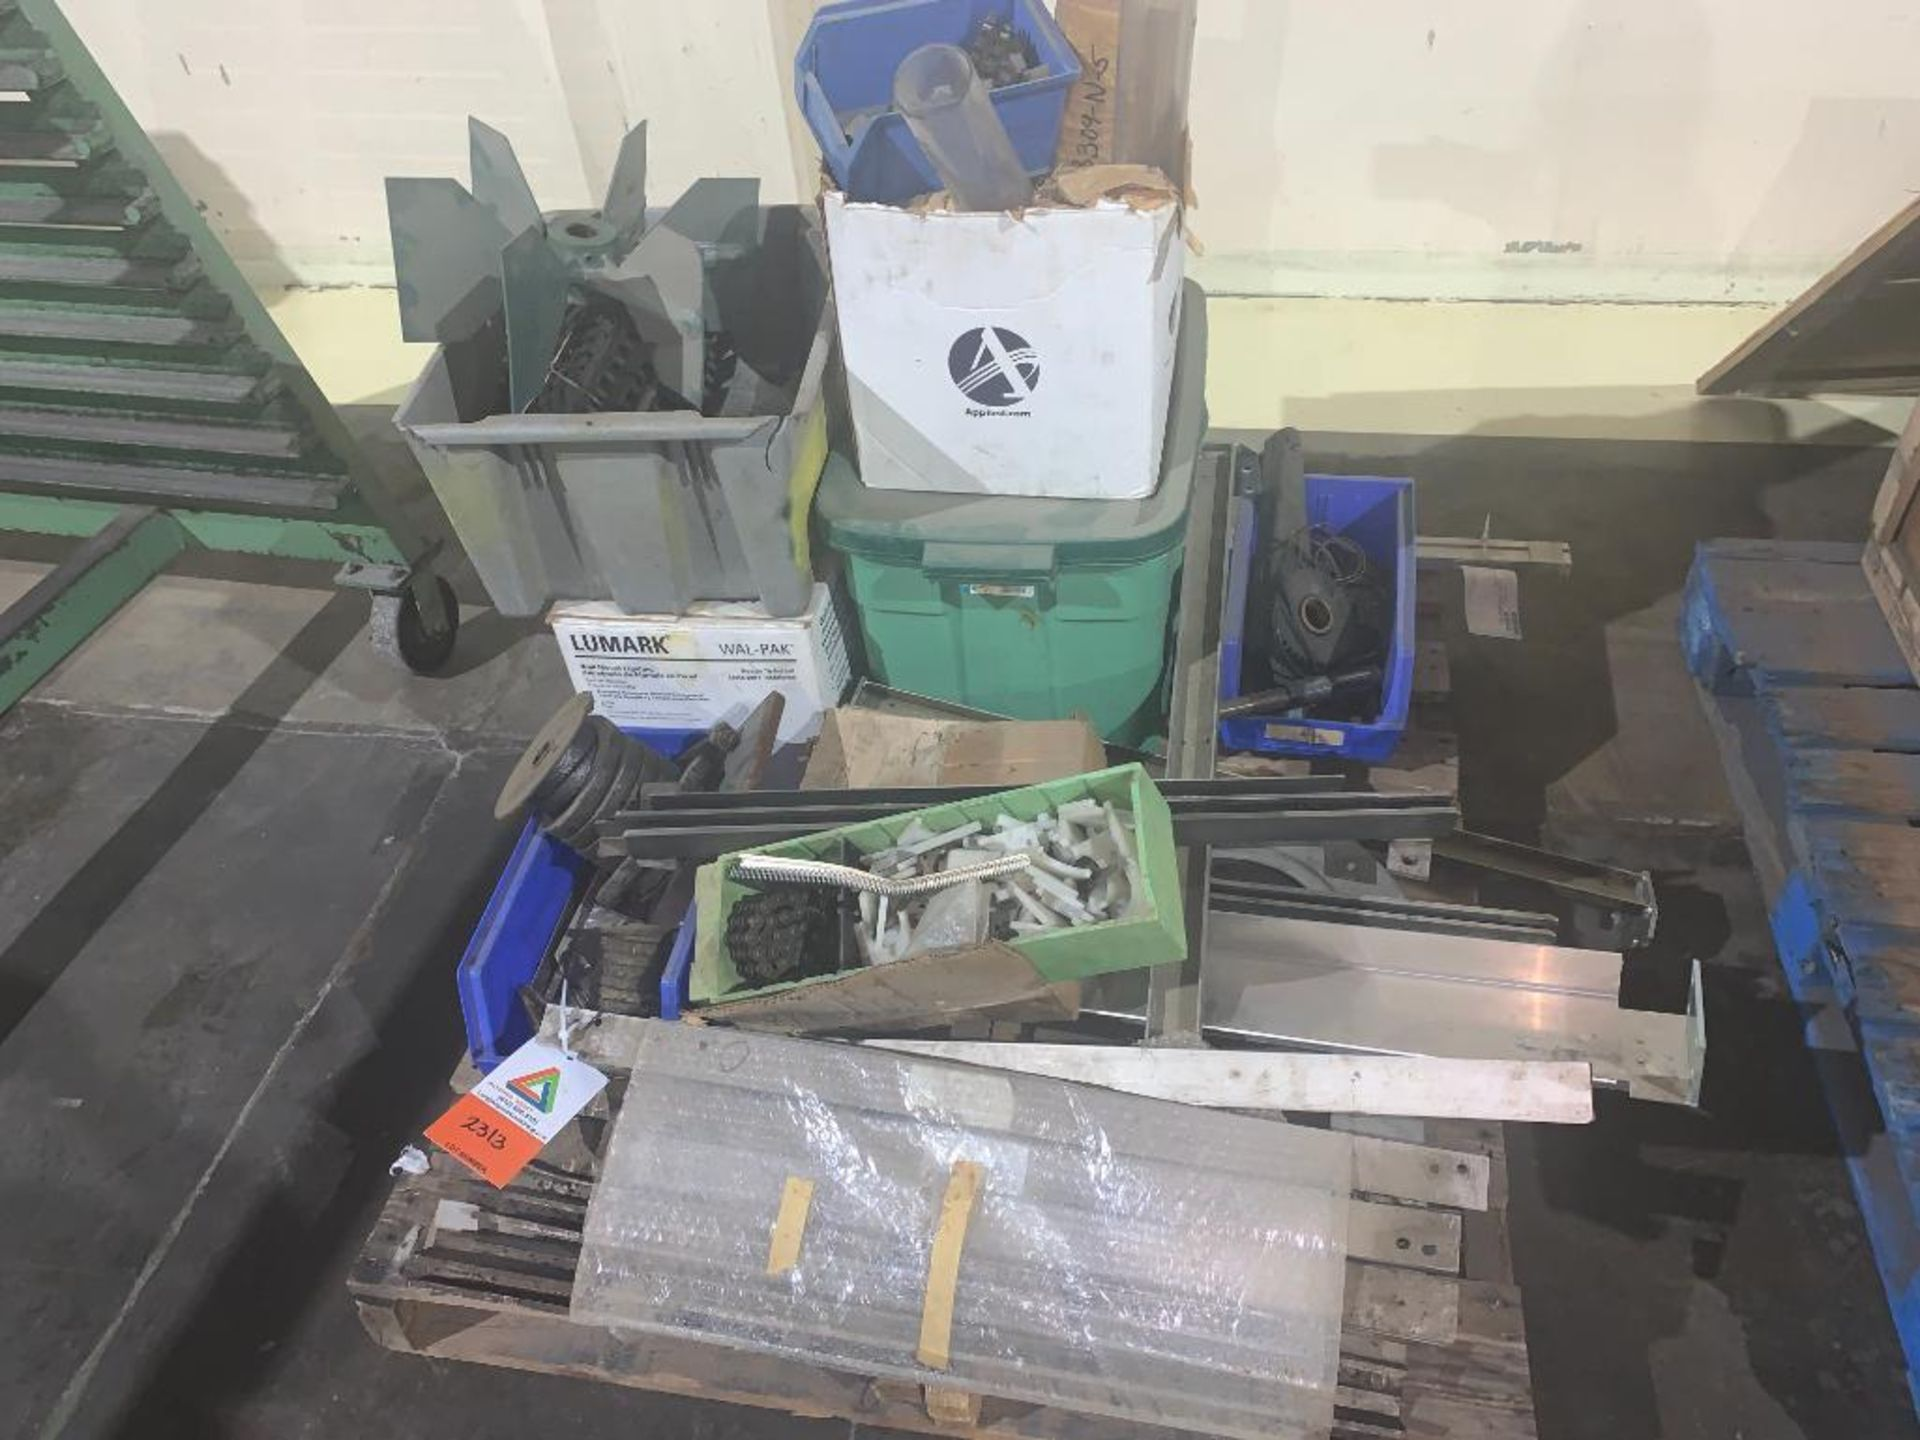 pallet of various parts